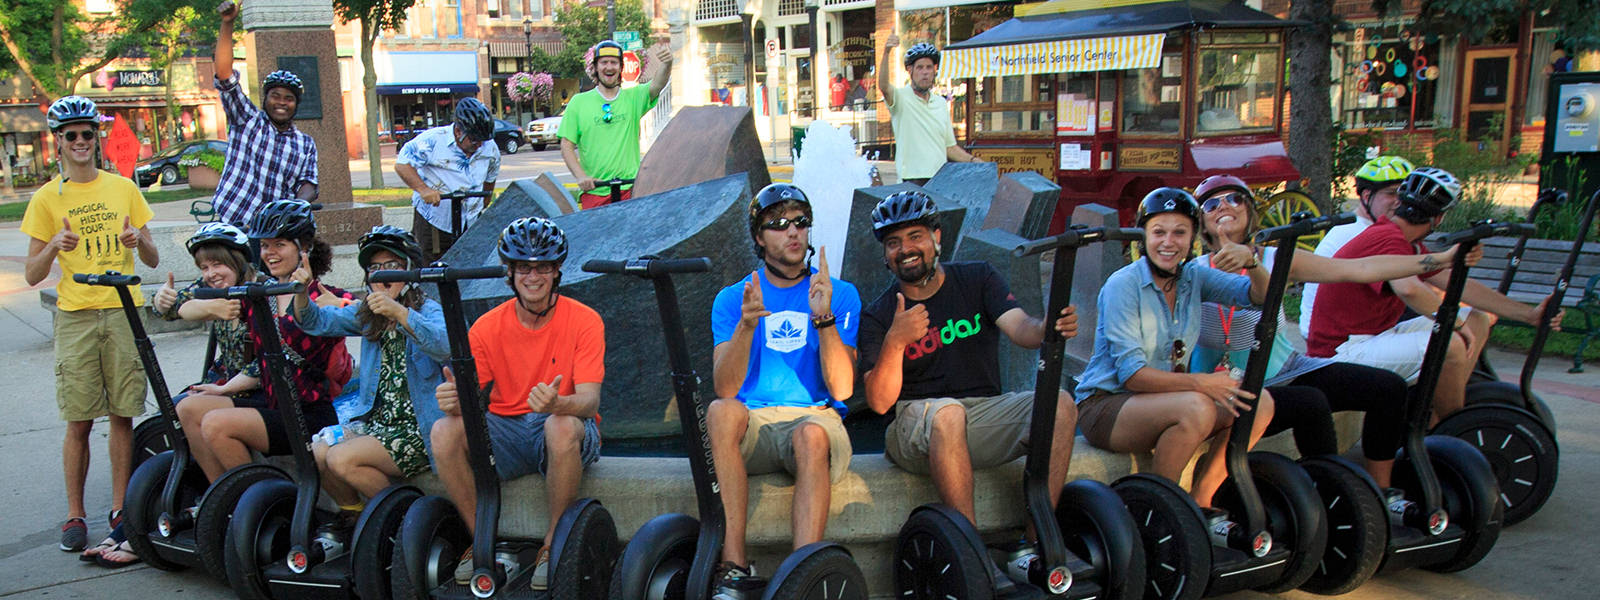 St. Paul Segway Tour Photo